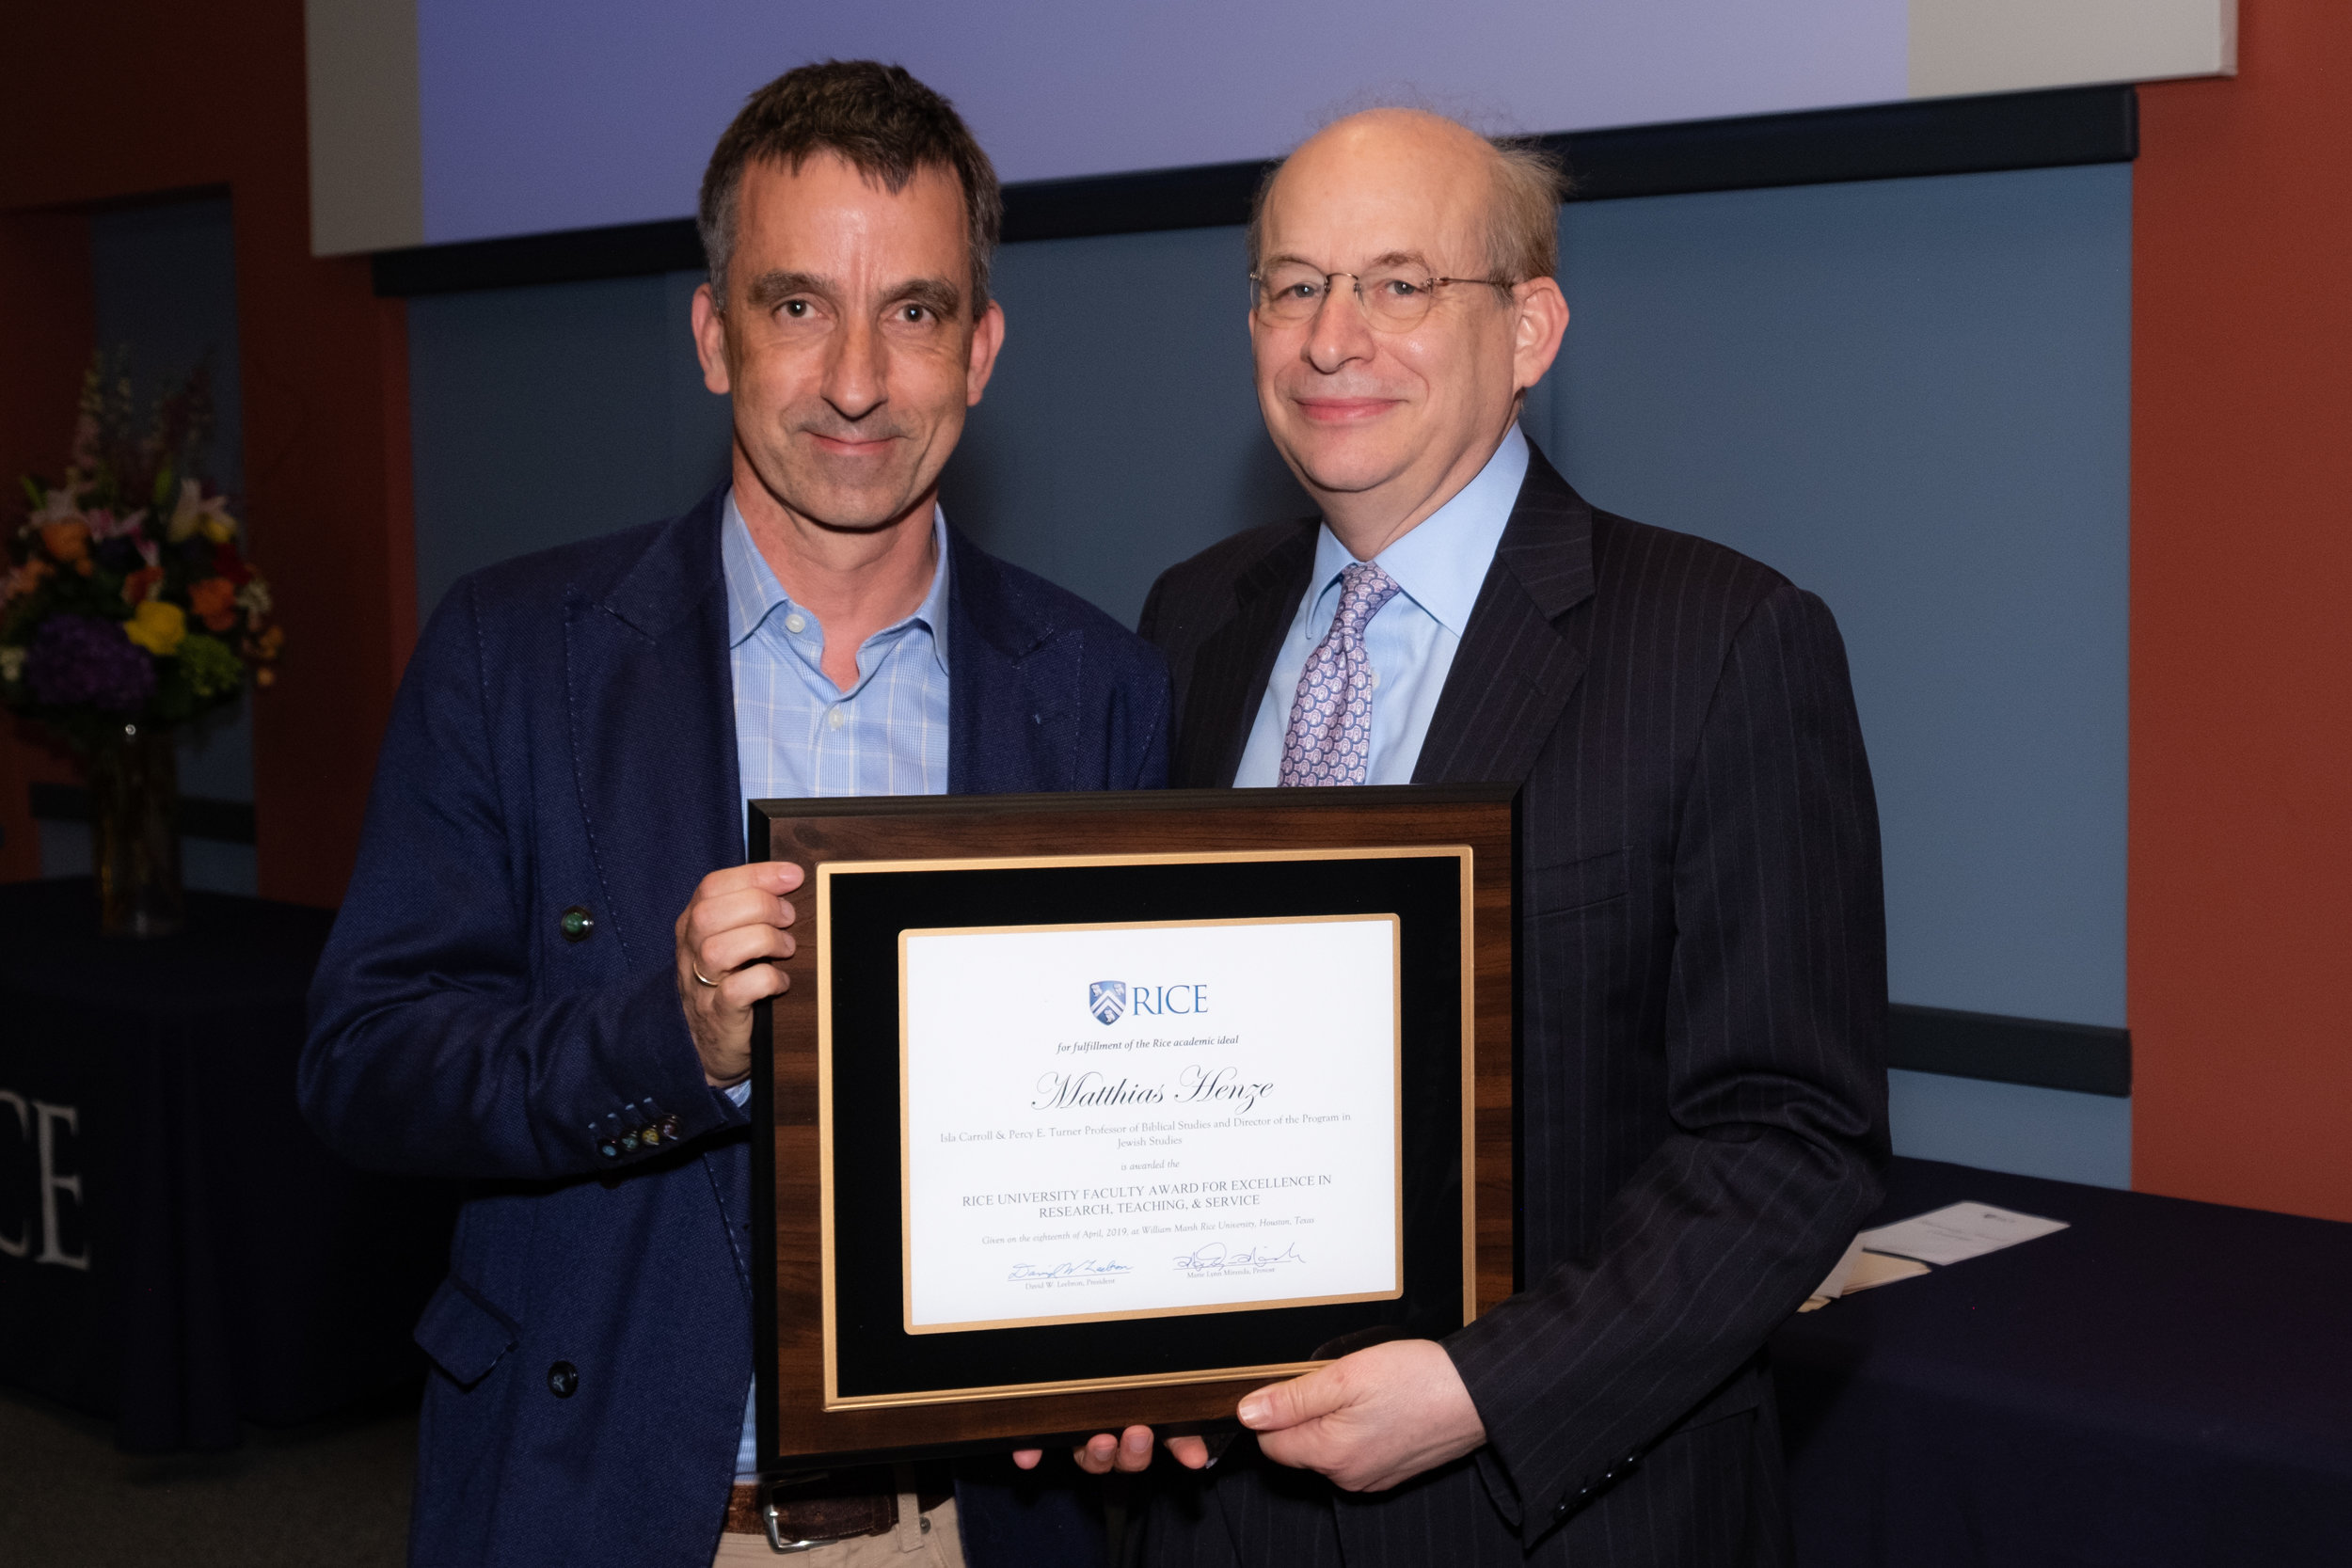 President Leebron & Matthias Henze, Rice University Faculty Award for Excellence in Research, Teaching, and Service